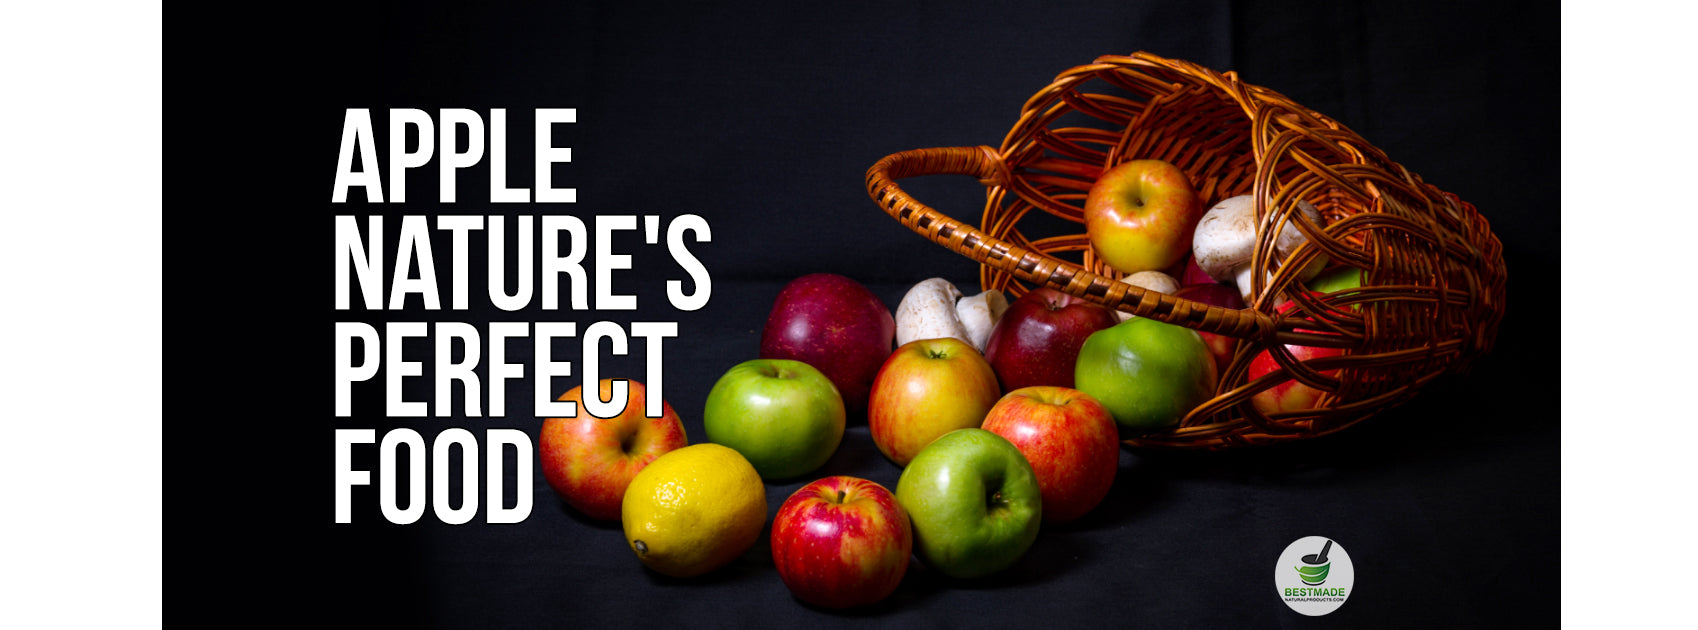 Nature's Perfect Food: The Apple